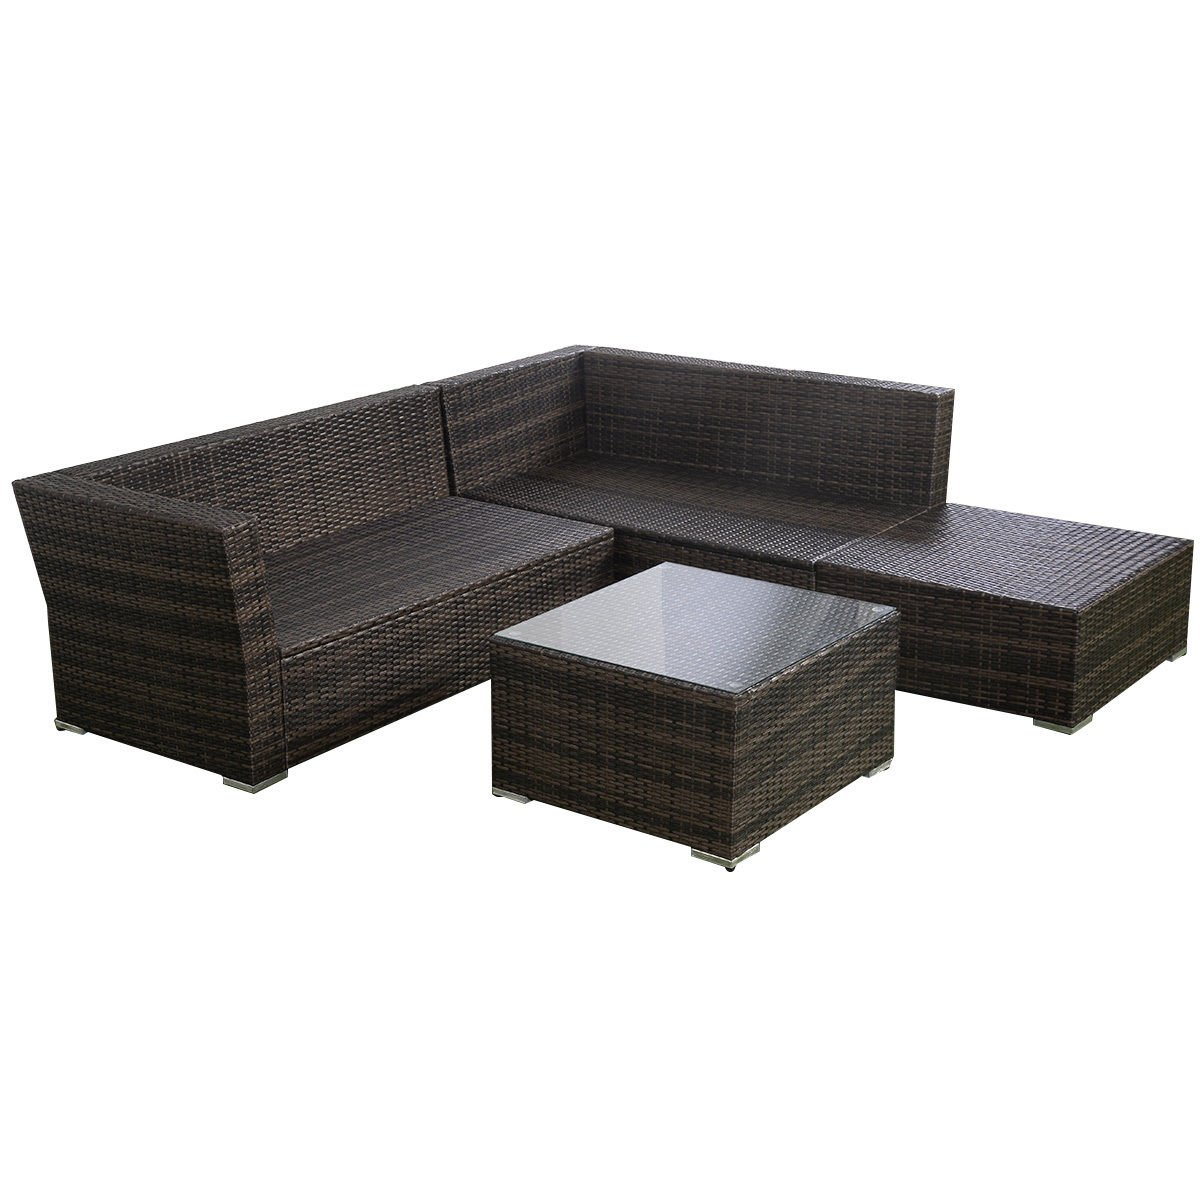 Amazon.com : Giantex 4pc Patio Sectional Furniture Pe Wicker Rattan Sofa  Set Deck Couch Outdoor : Garden U0026 Outdoor